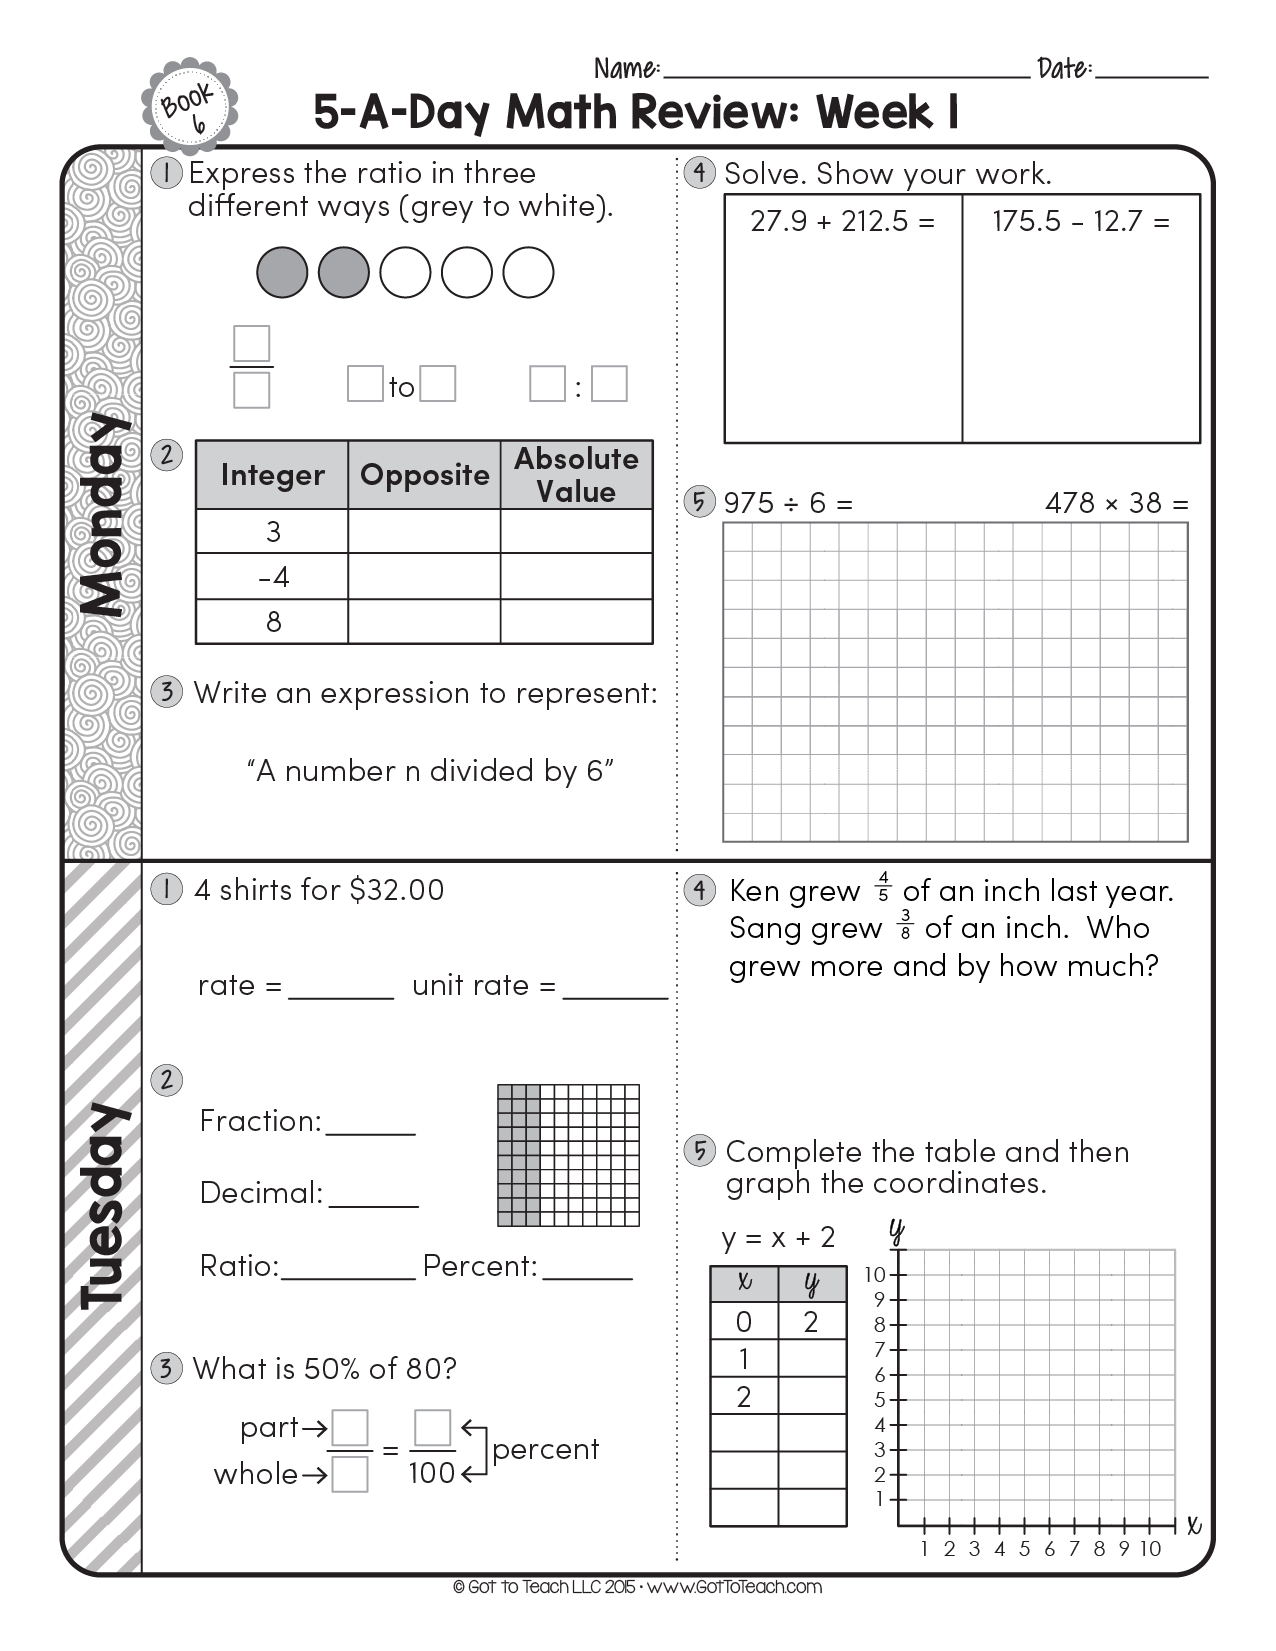 Daily Math Spiral Worksheet   Printable Worksheets and Activities for  Teachers [ 1651 x 1276 Pixel ]